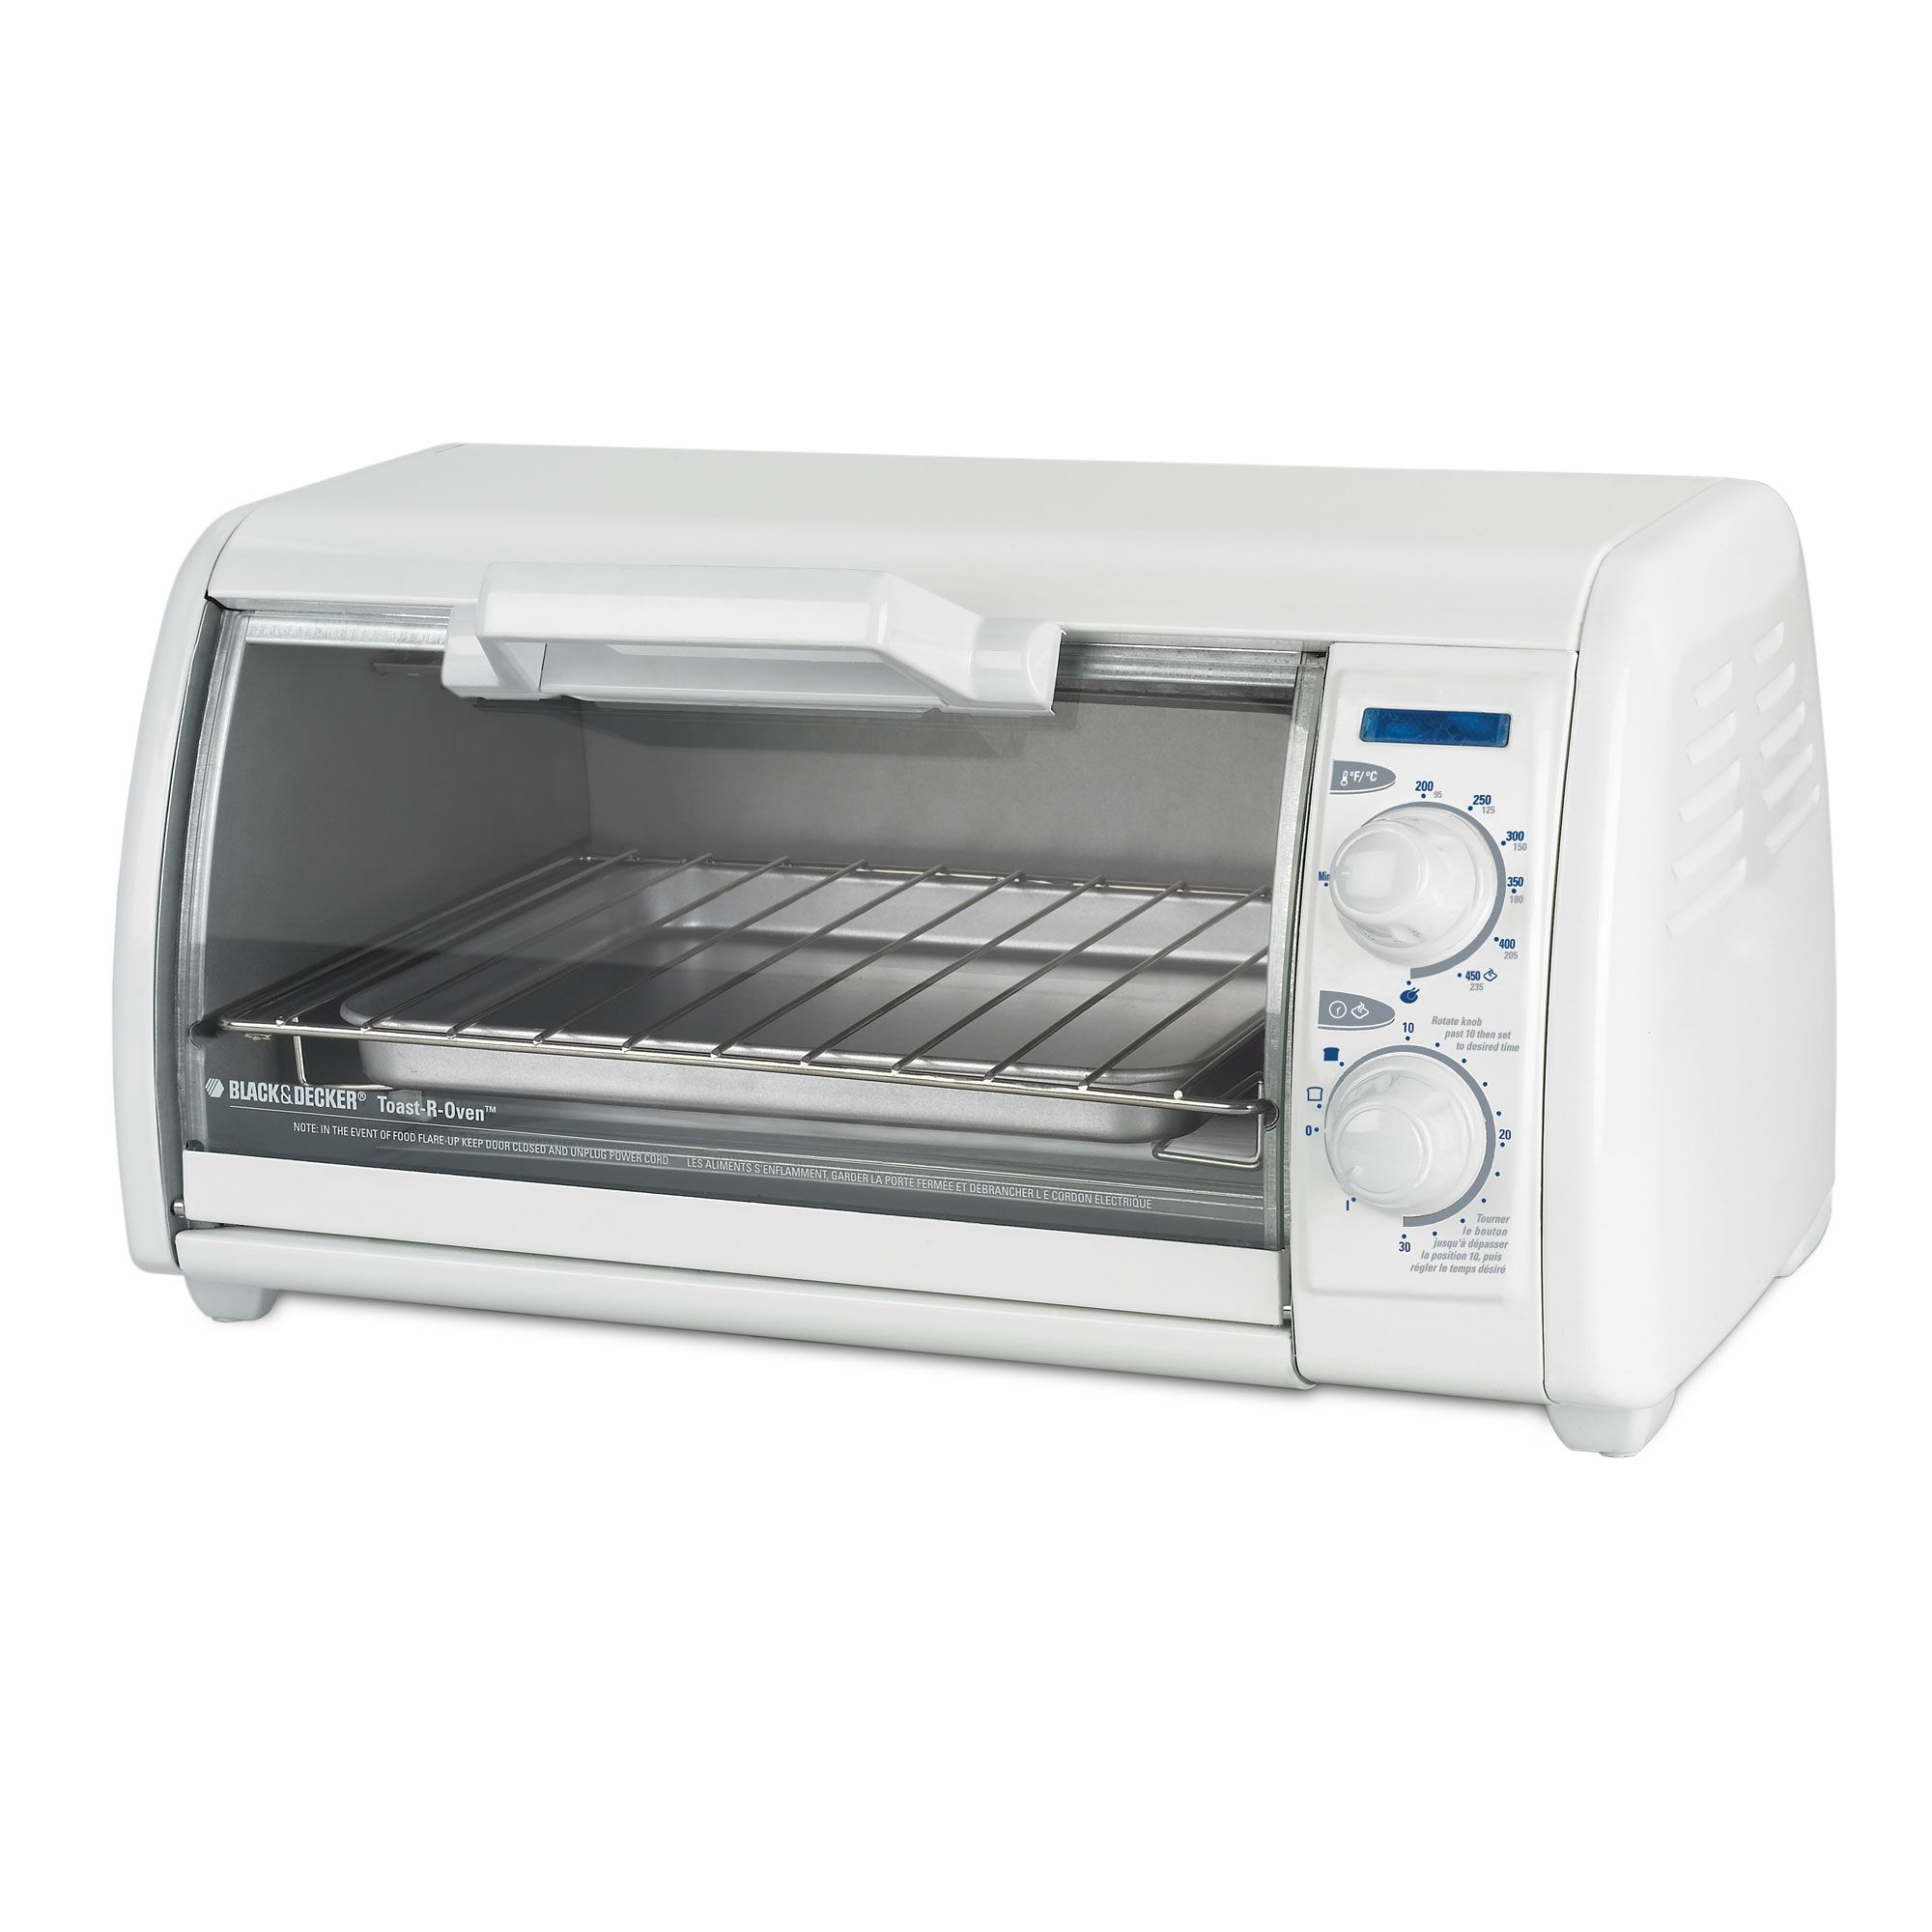 4 Slice Toaster Oven Toaster Oven Countertop Oven Black And